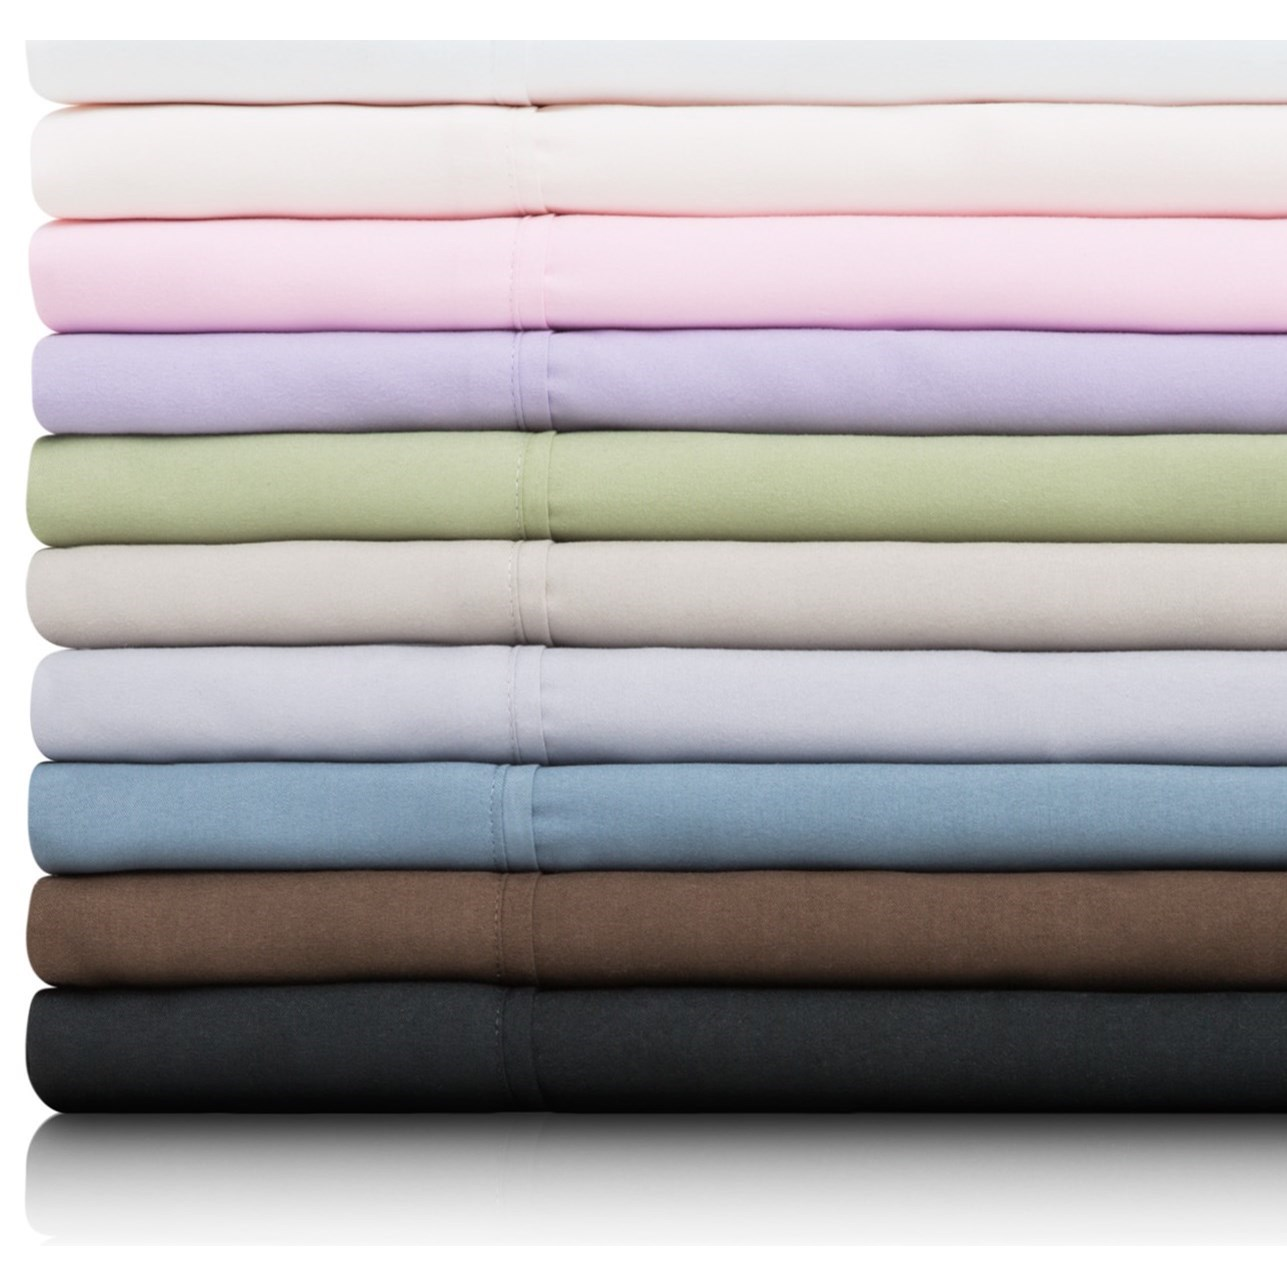 Brushed Microfiber Cot Woven™ Brushed Microfiber Cot Sheet Set by Malouf at Standard Furniture